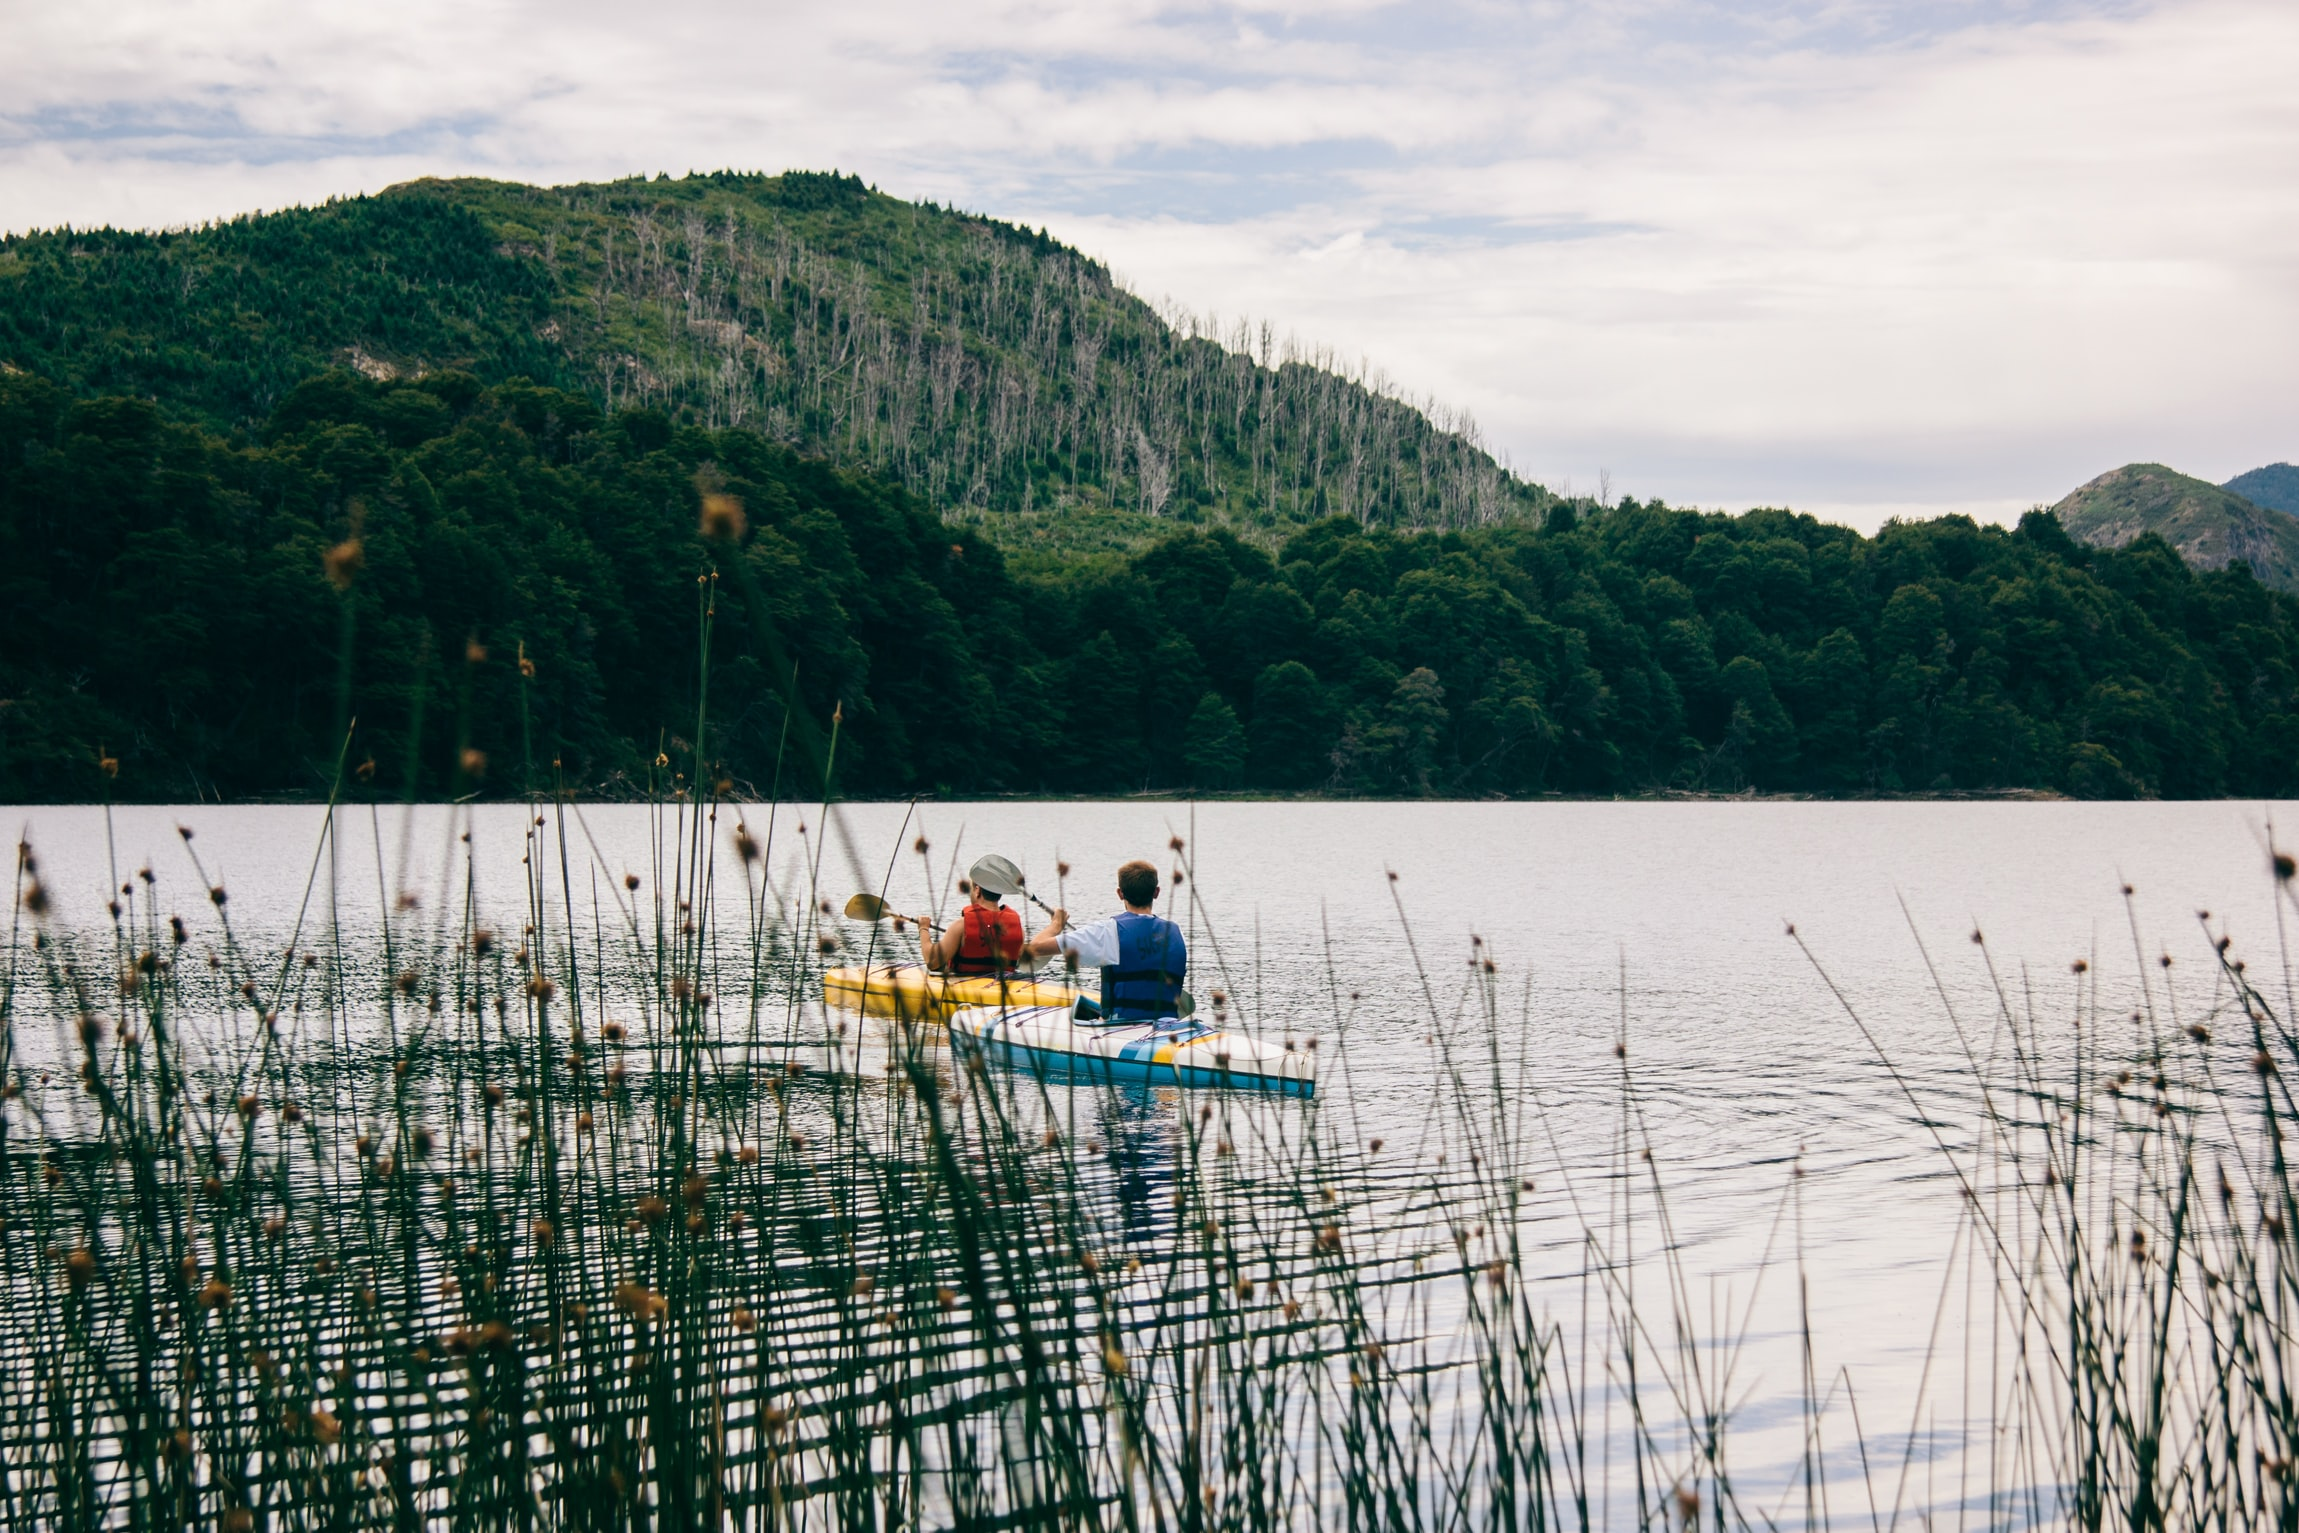 Two people in kayaks on a lake